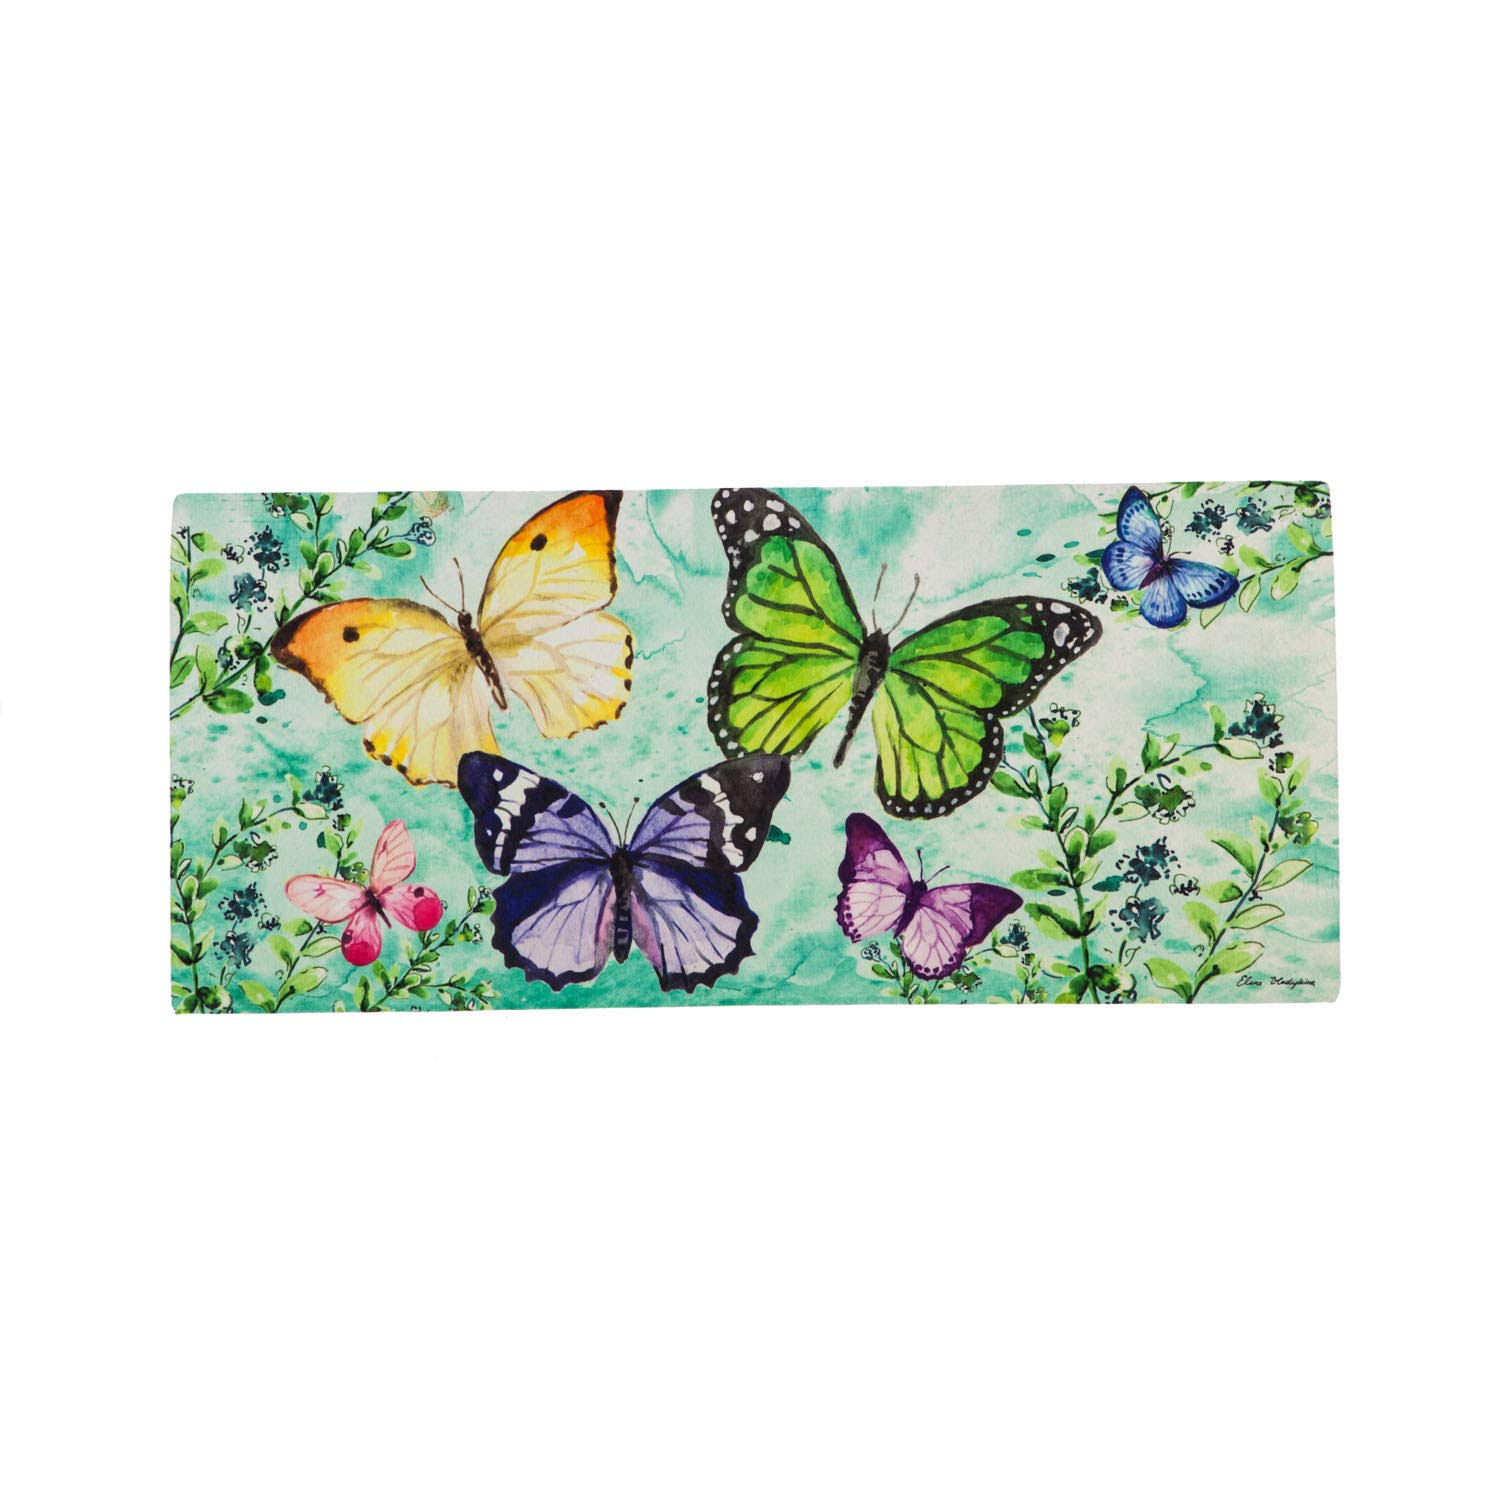 Evergreen Sassafras Switch Mats Butterfly Friends